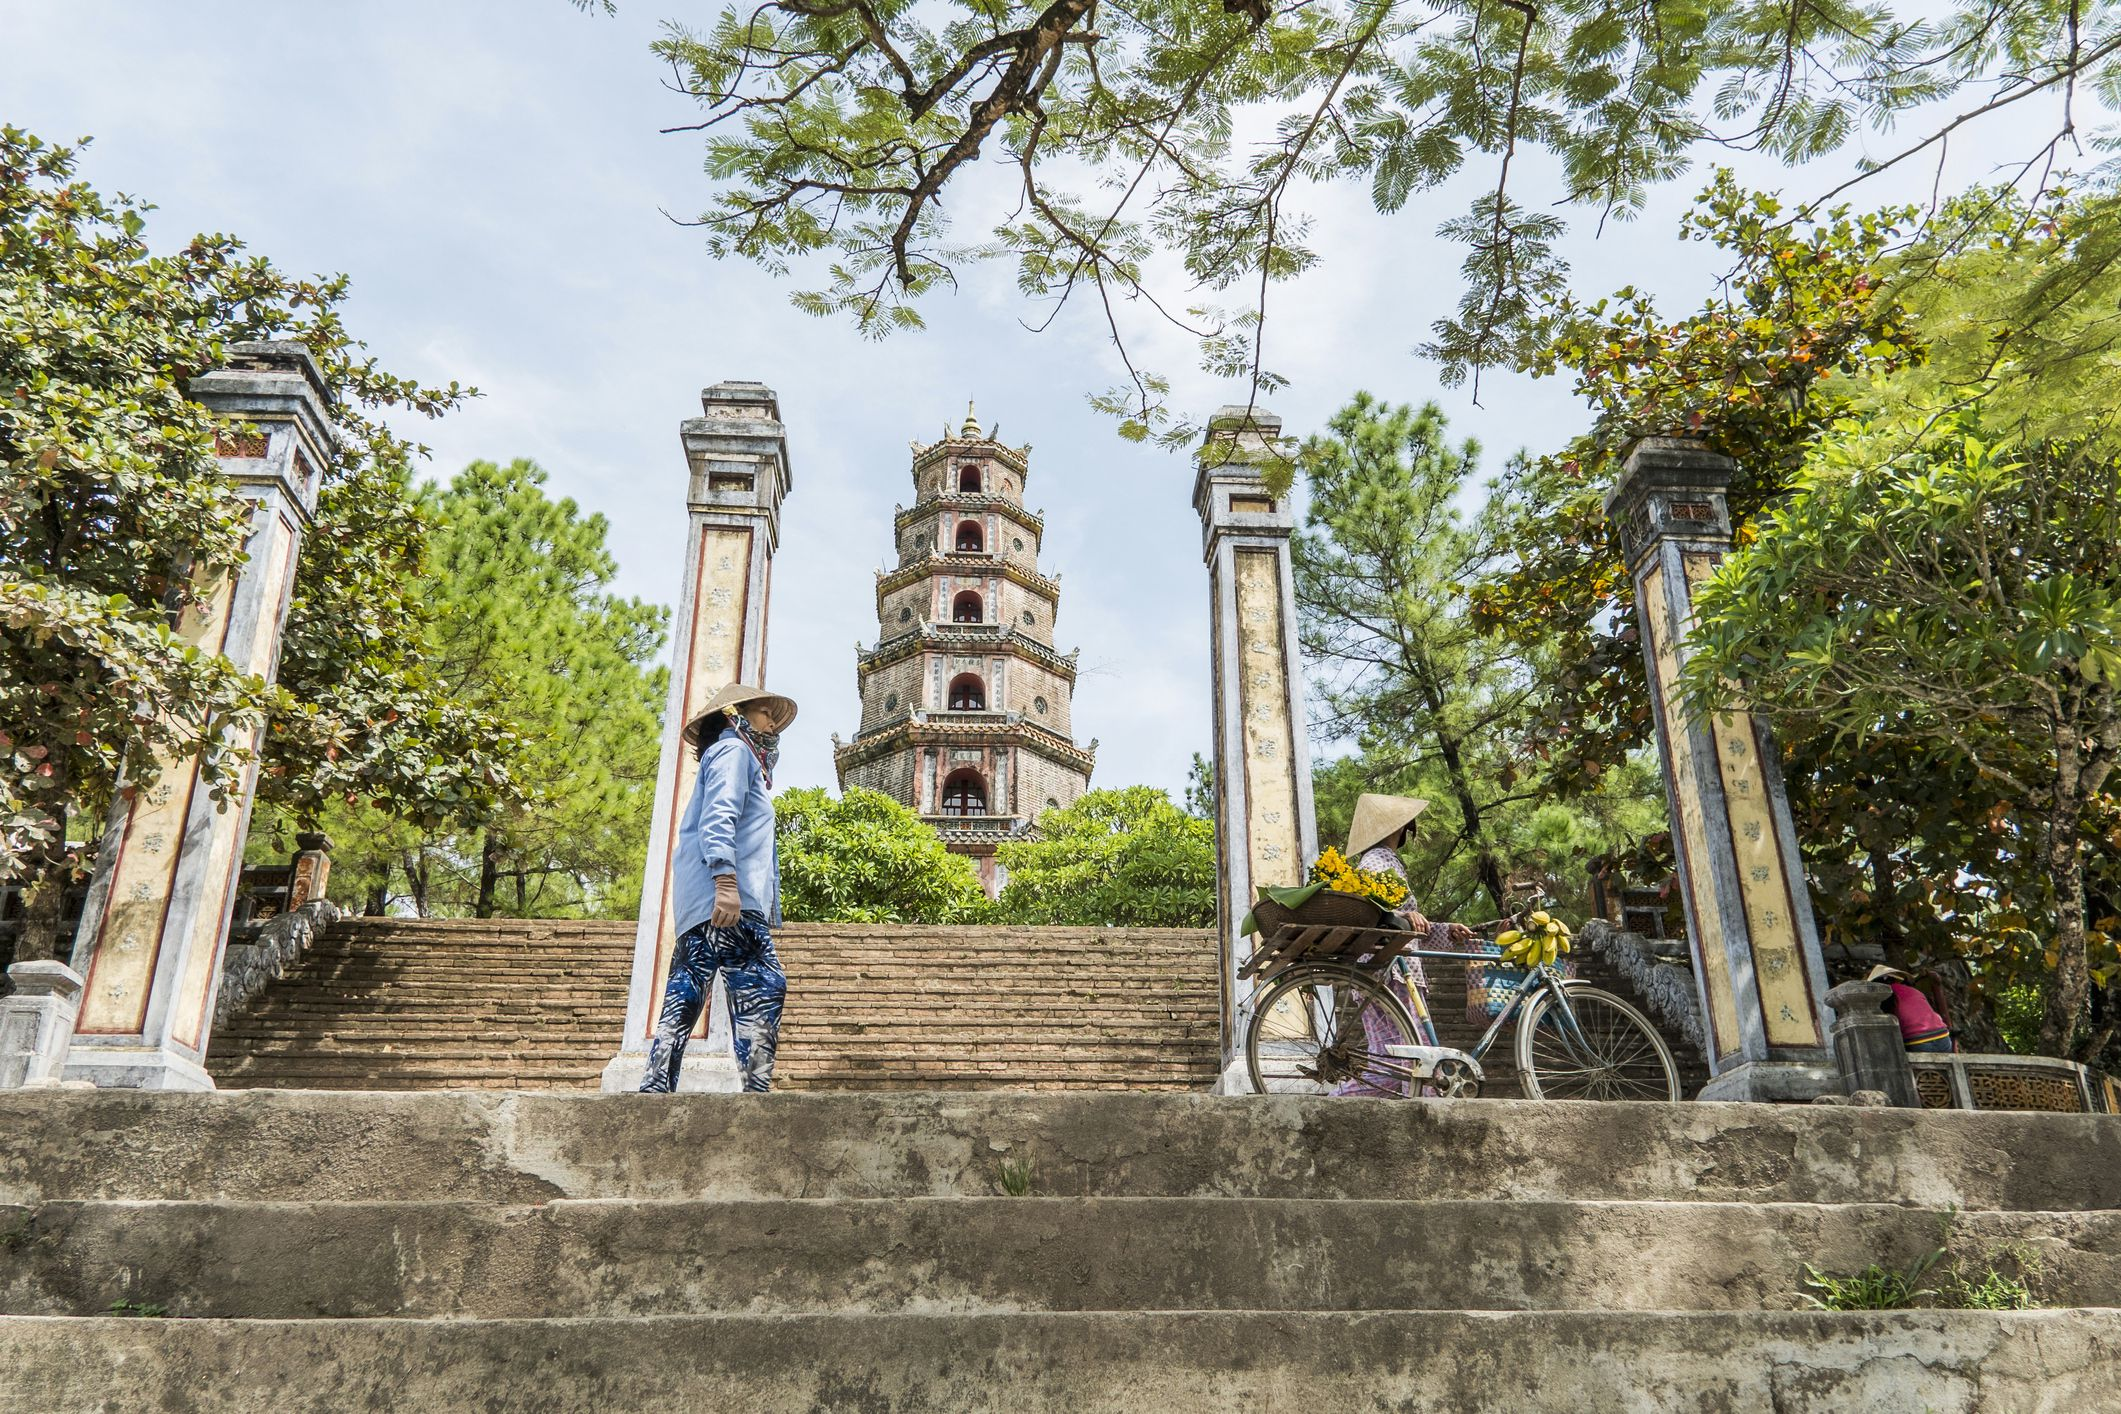 Hue in Central Vietnam: an Inside Look at Vietnam's Old Royal Capital